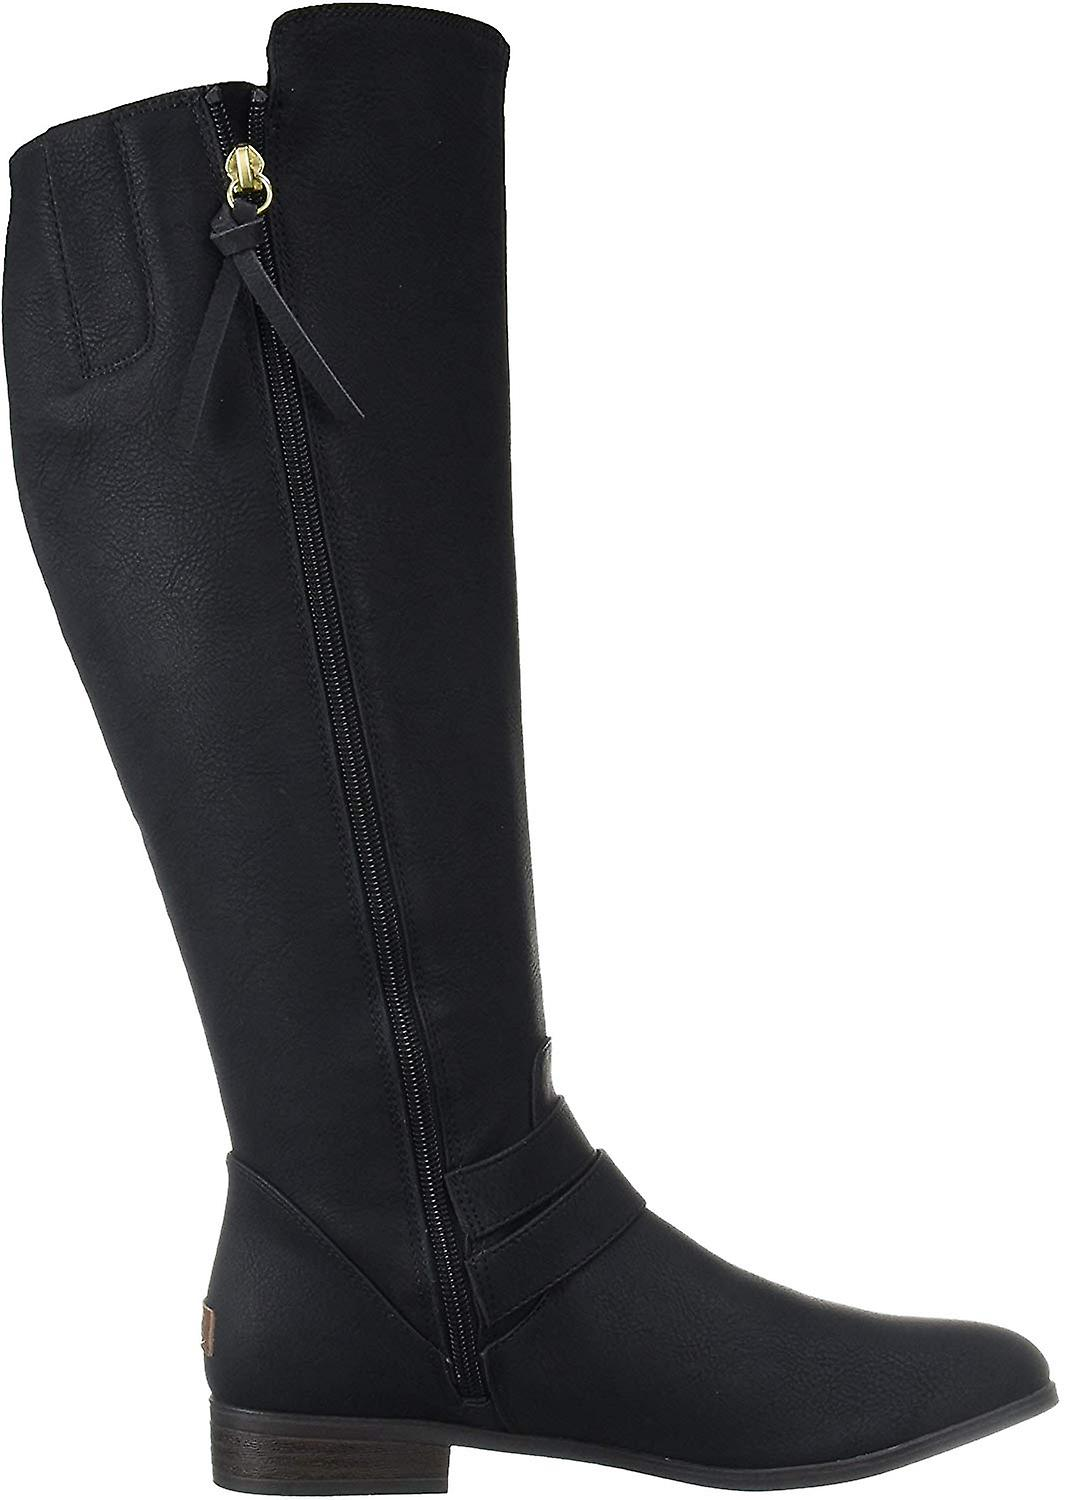 Dr. Scholl's Shoes Womens Reach for It Almond Toe Knee High Fashion Boots